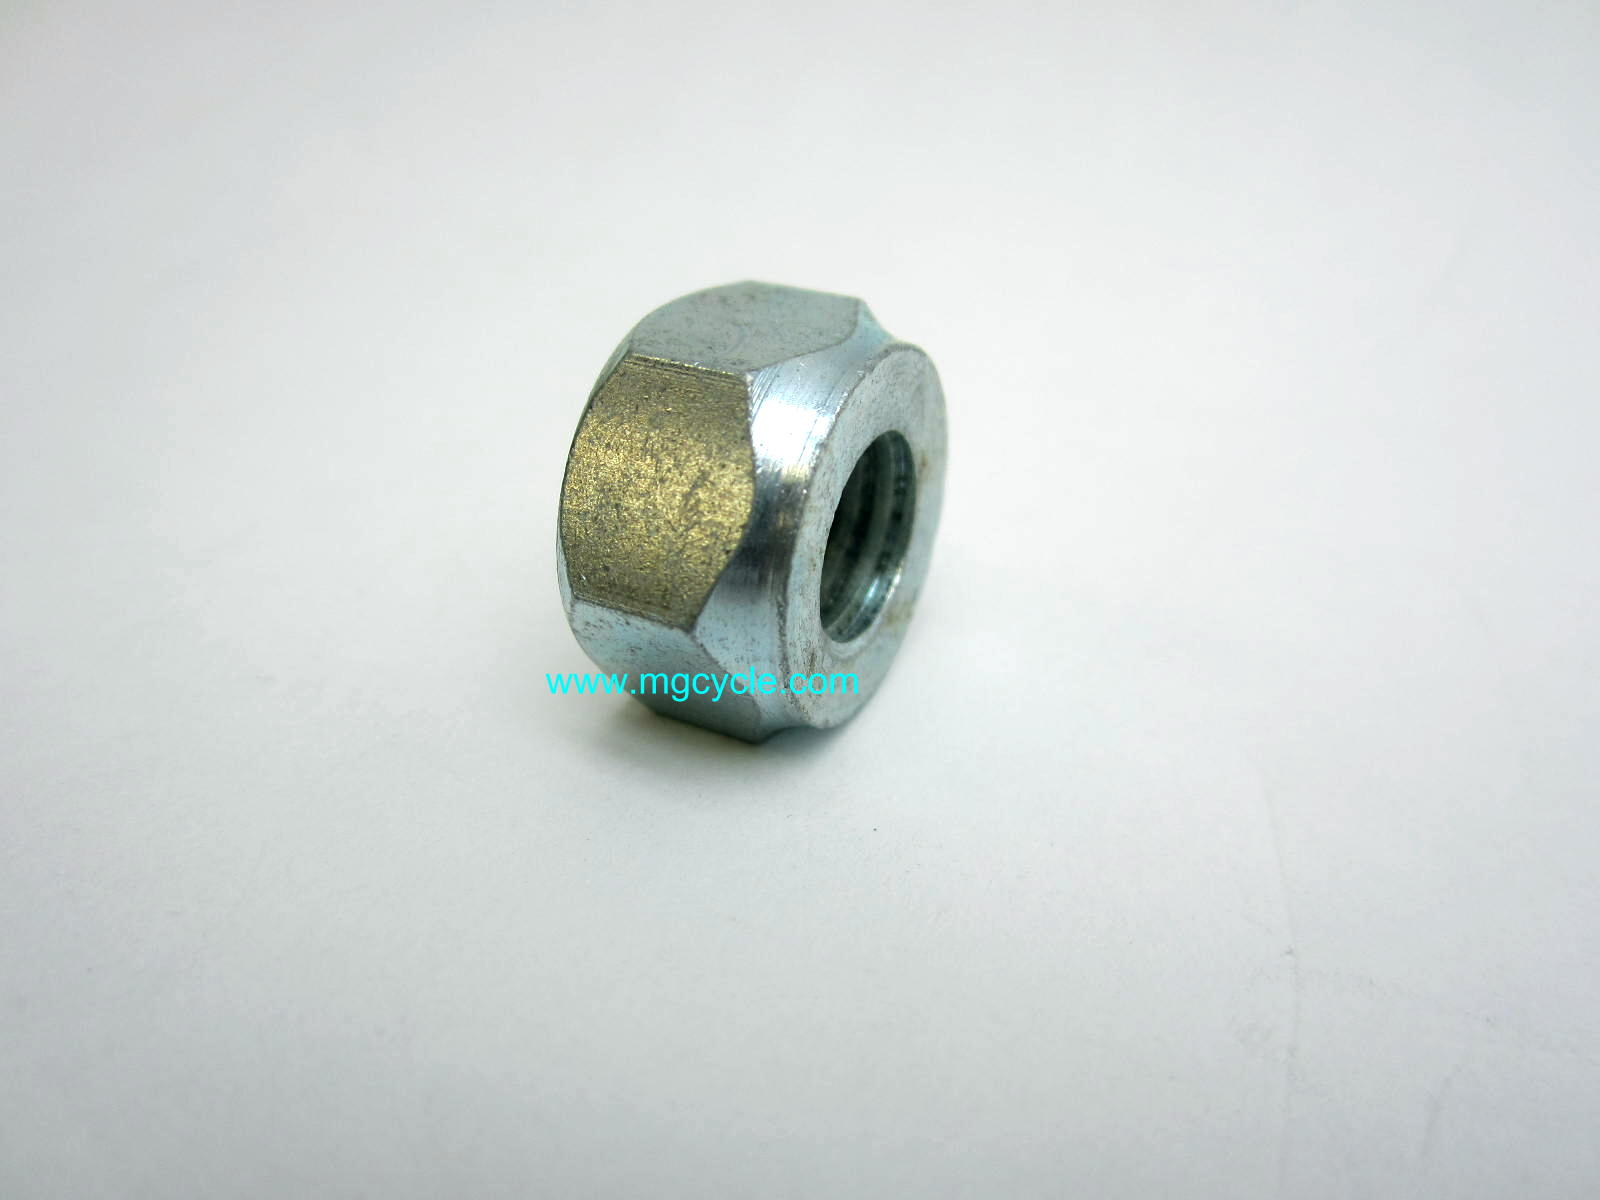 M10 x 1.5 cylinder stud nut, most models GU92603010